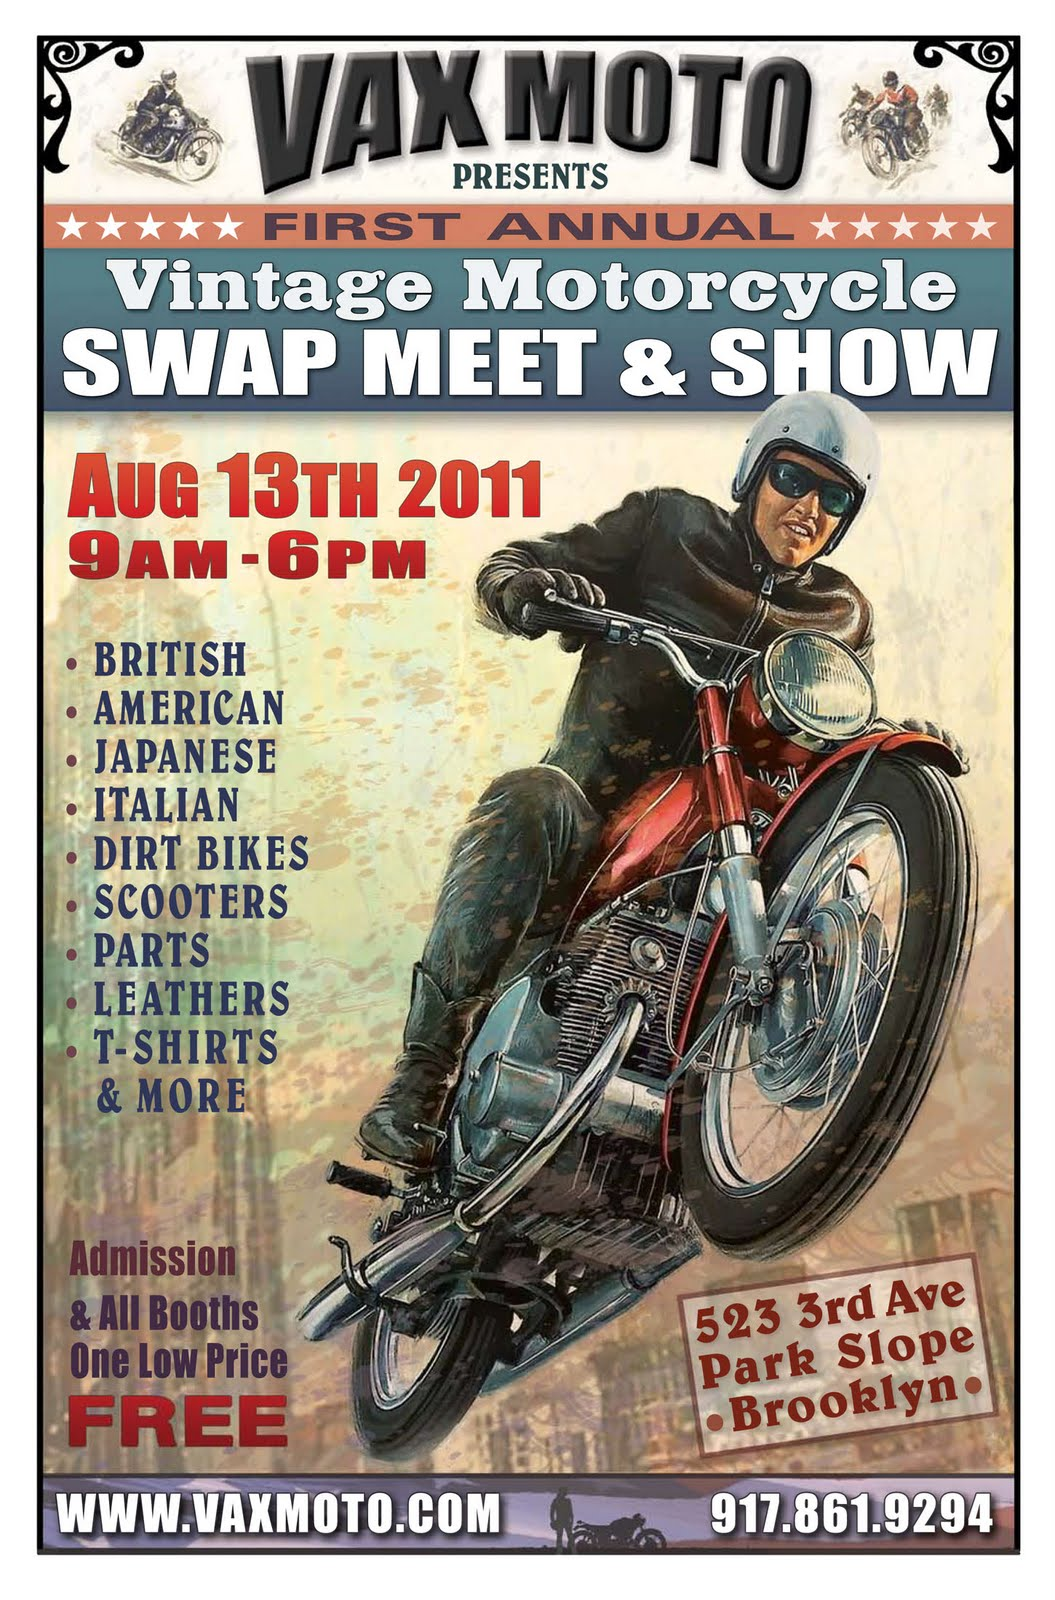 Vintage Motorcycle Swap Meet Show In Brooklyn Tomorrow